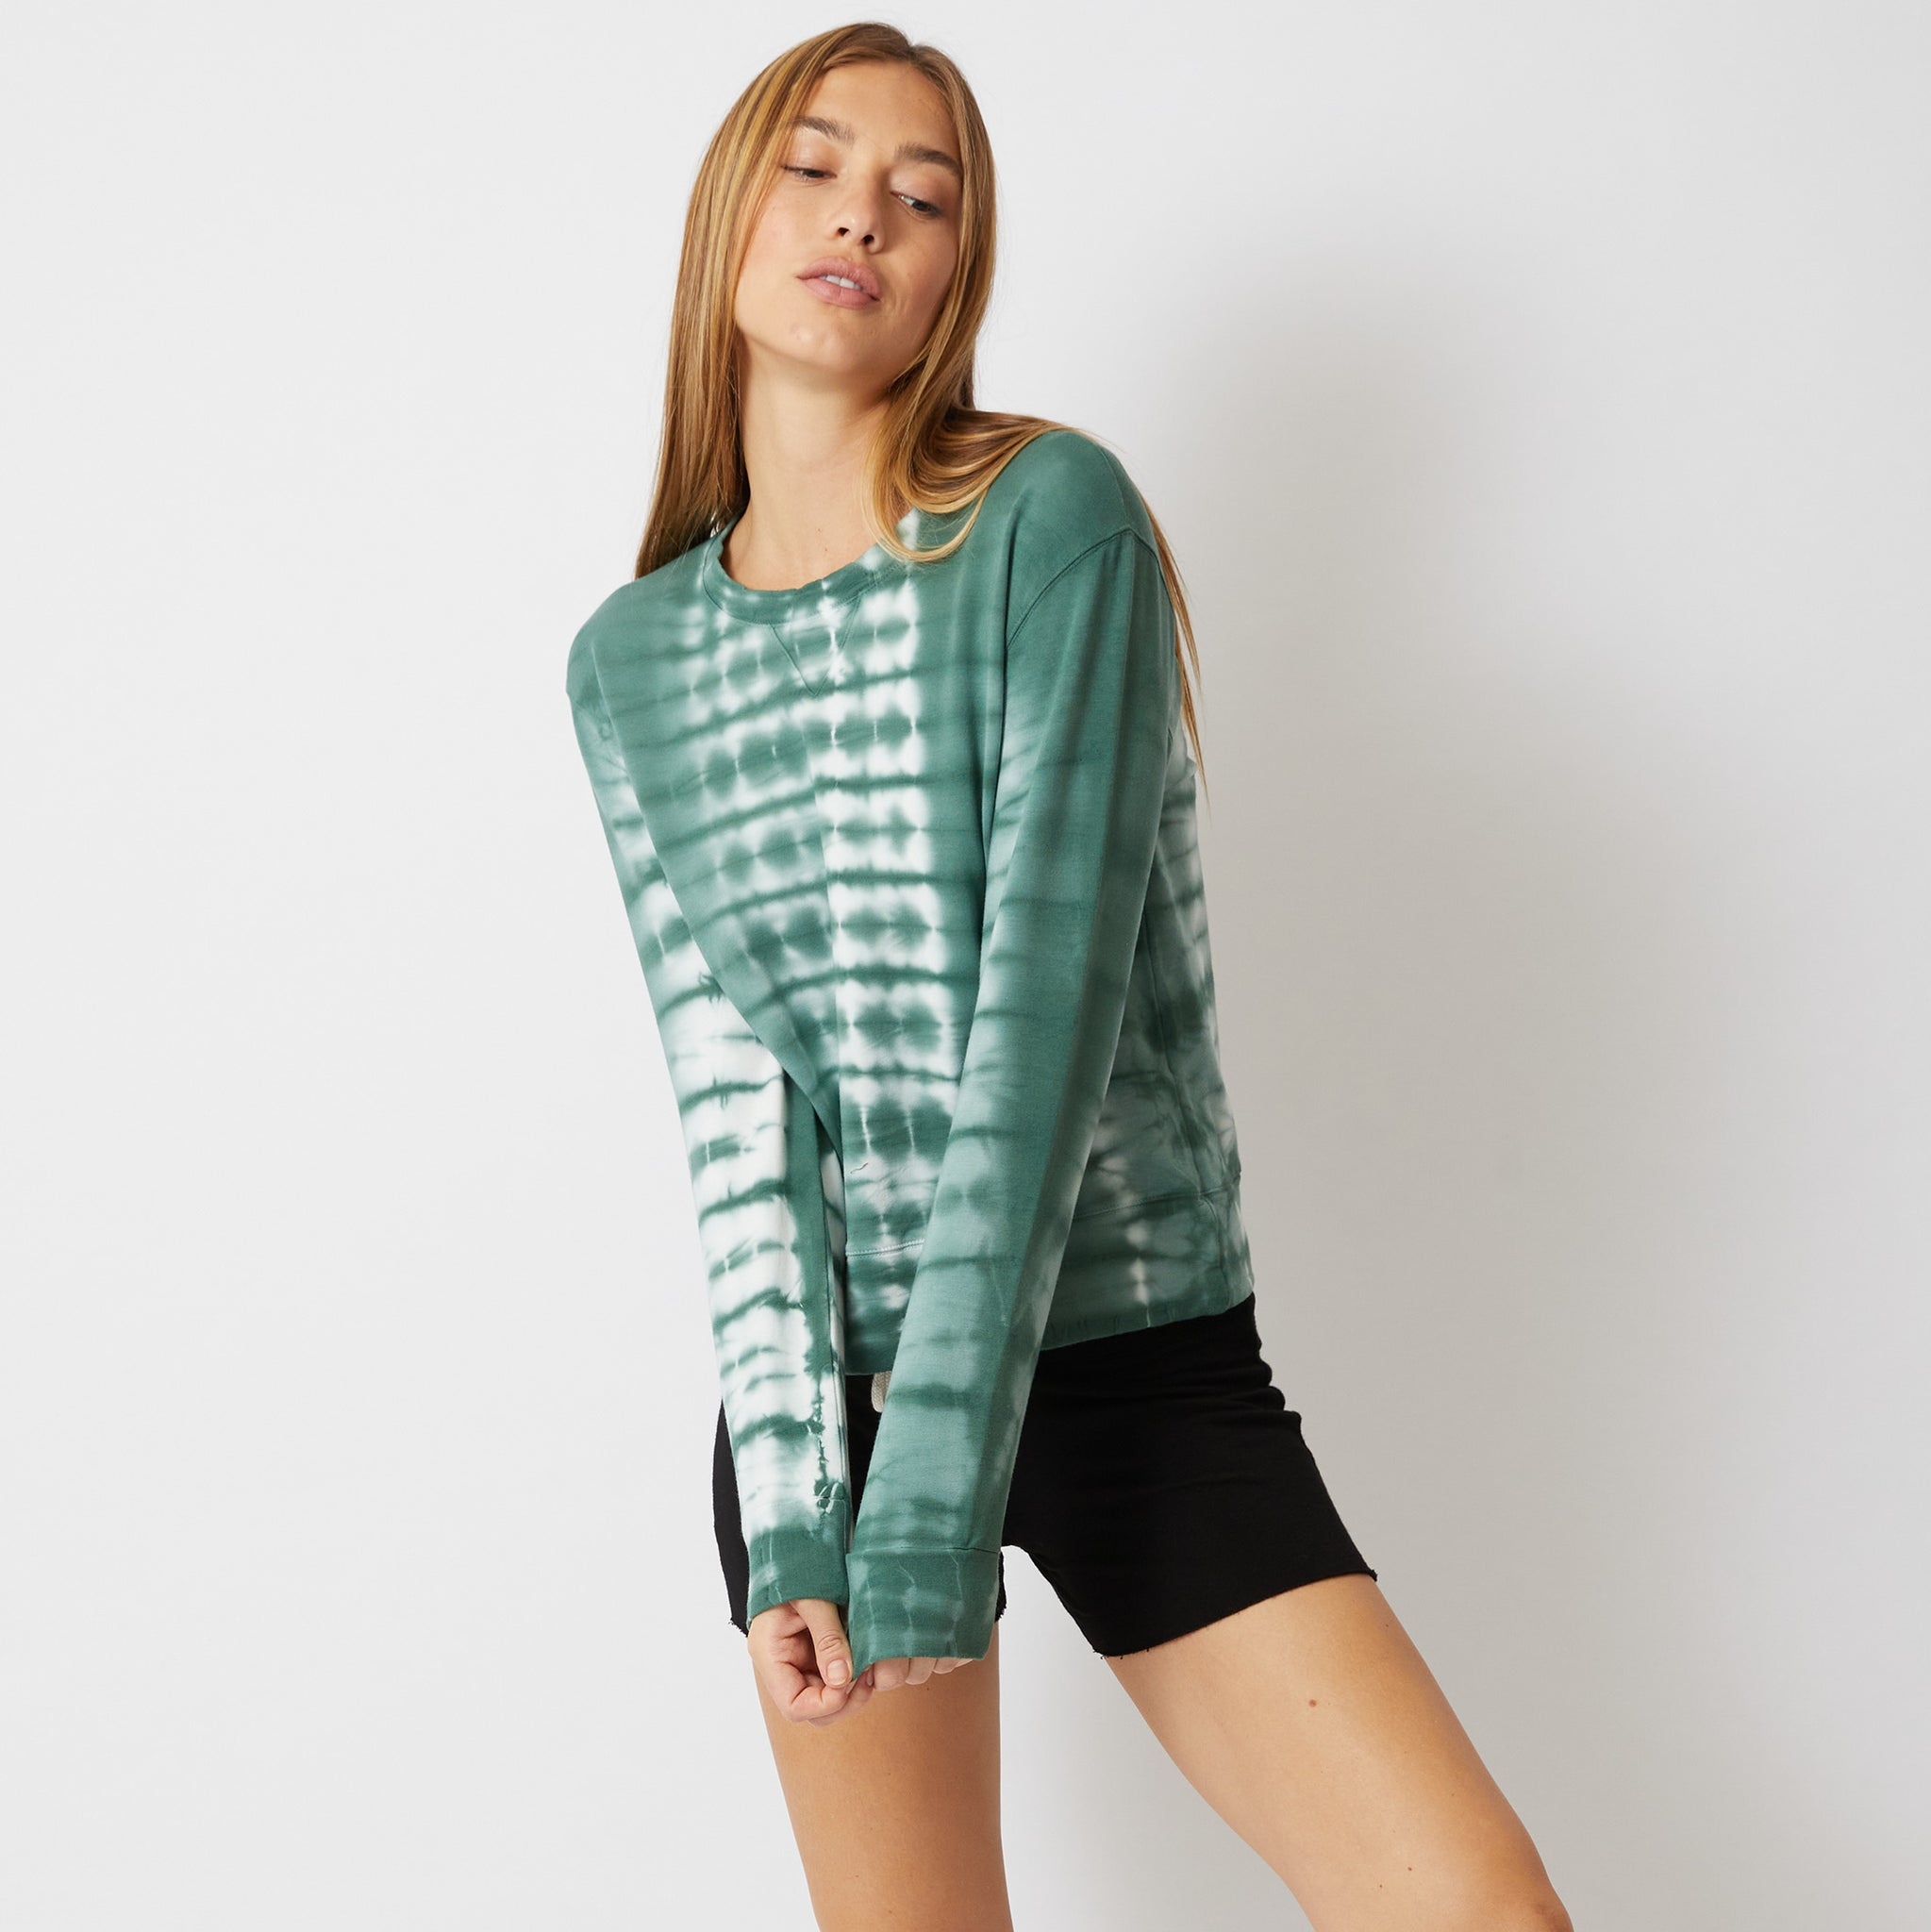 Alligator Tie Dye Sweatshirt